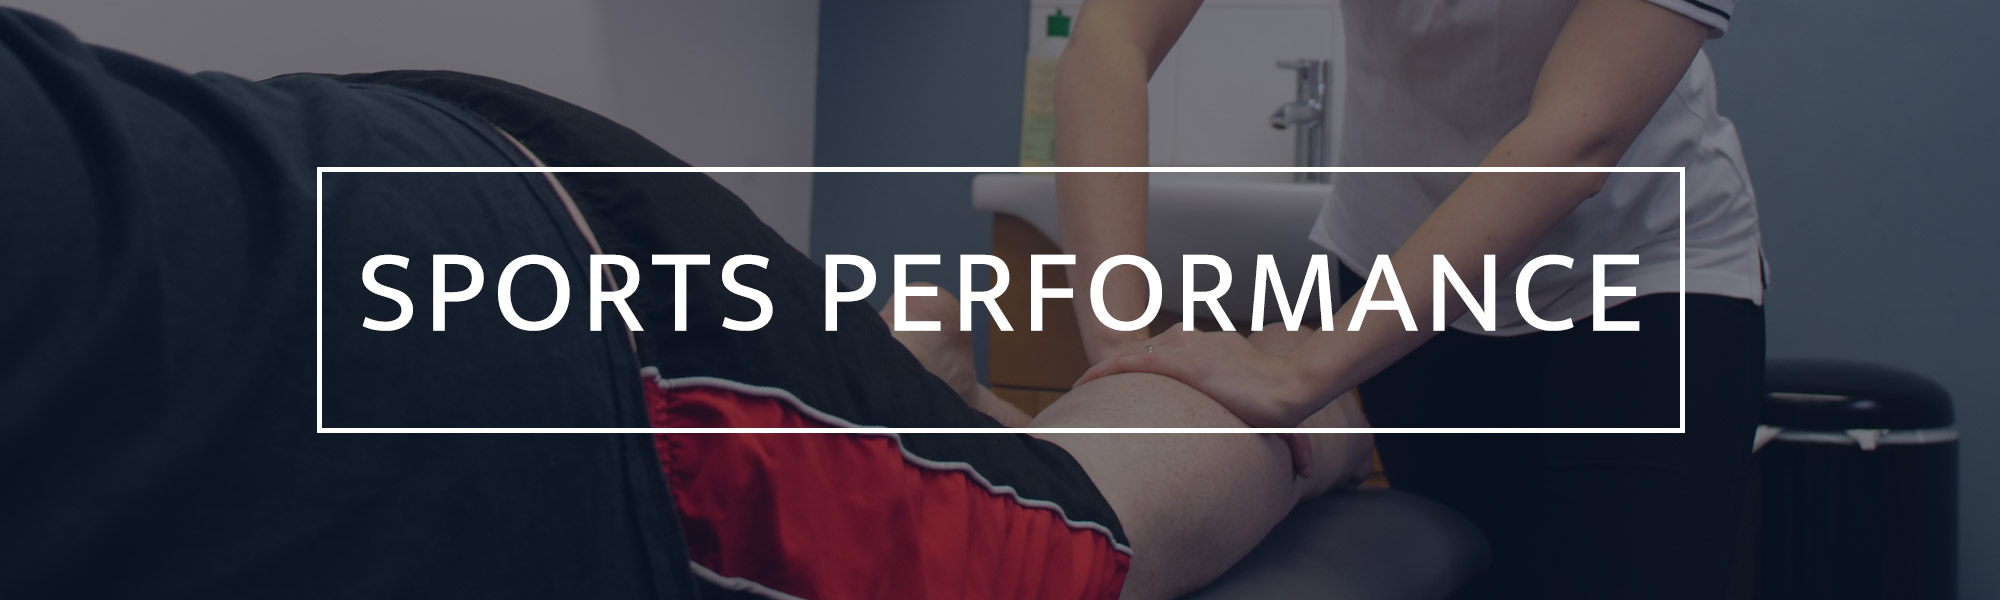 Sports Performance Header 2